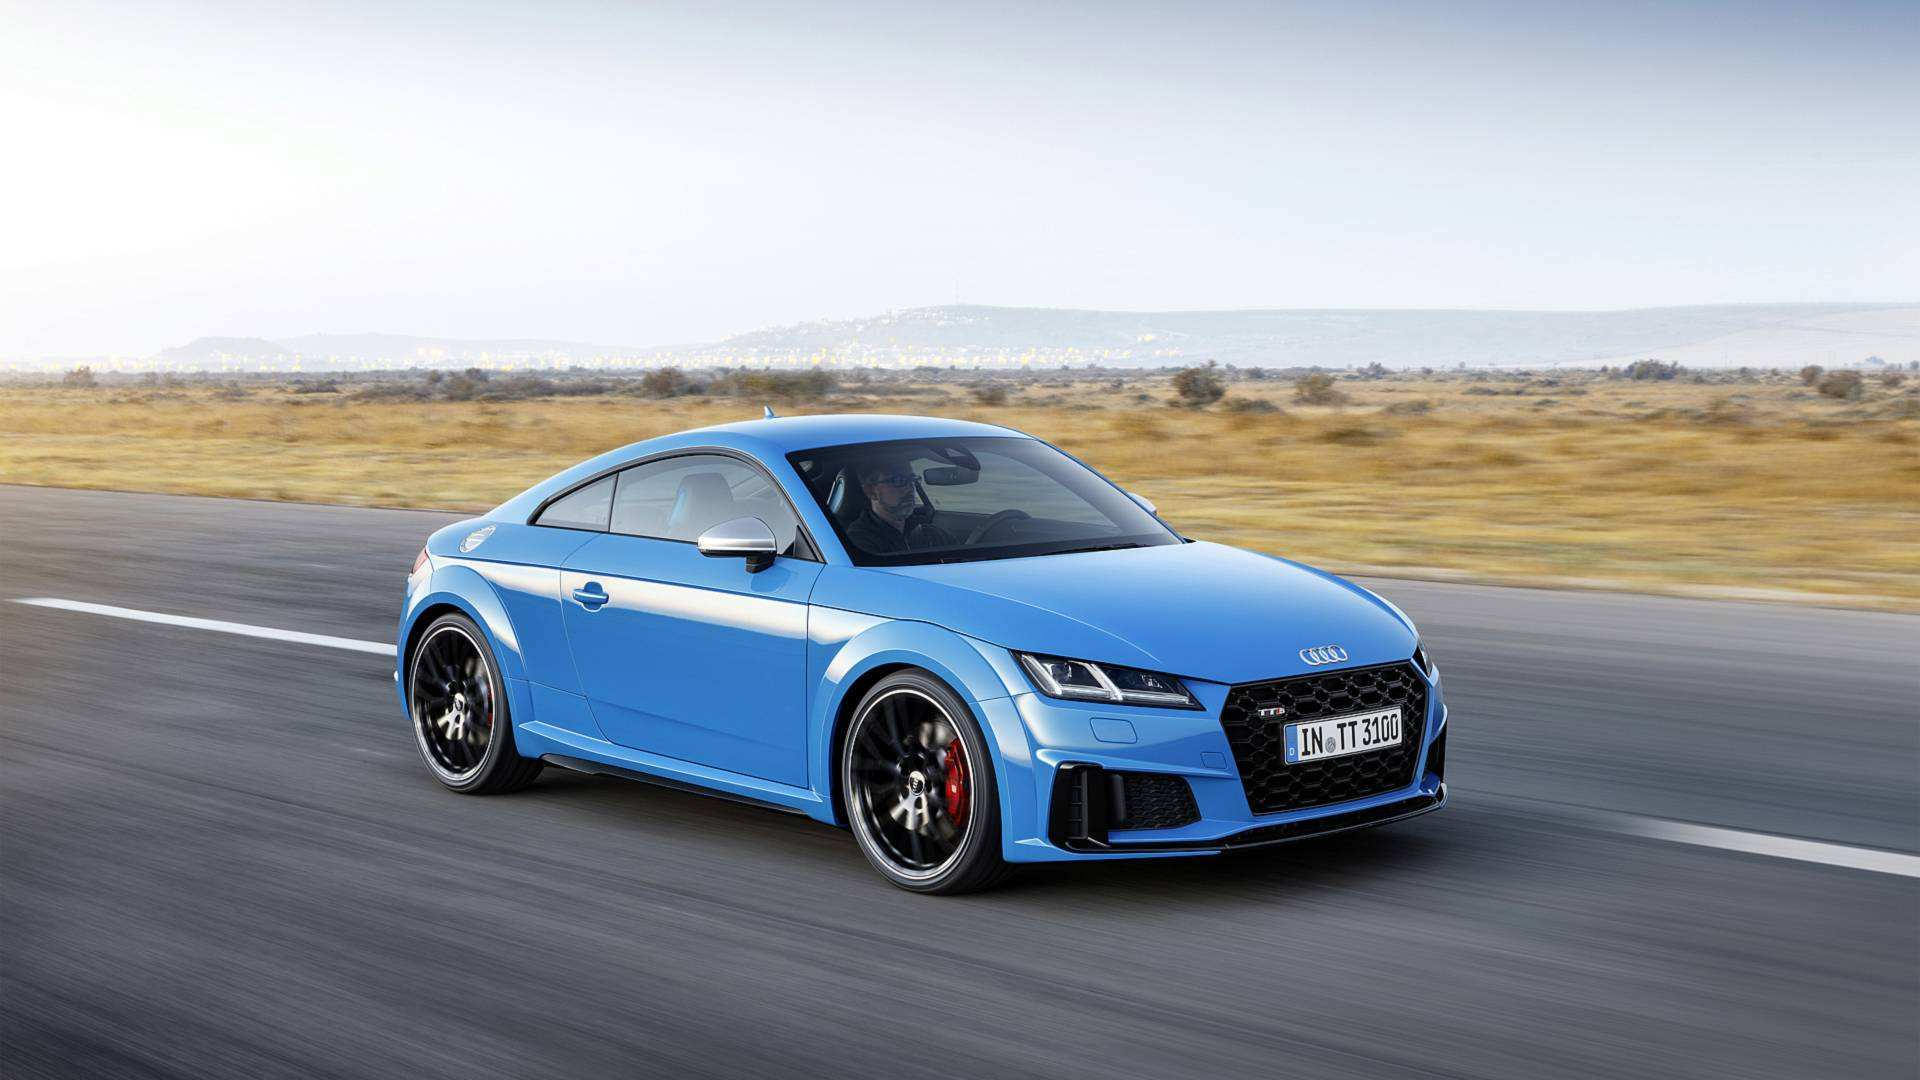 87 Best Review New Audi 2019 Uk Exterior First Drive for New Audi 2019 Uk Exterior